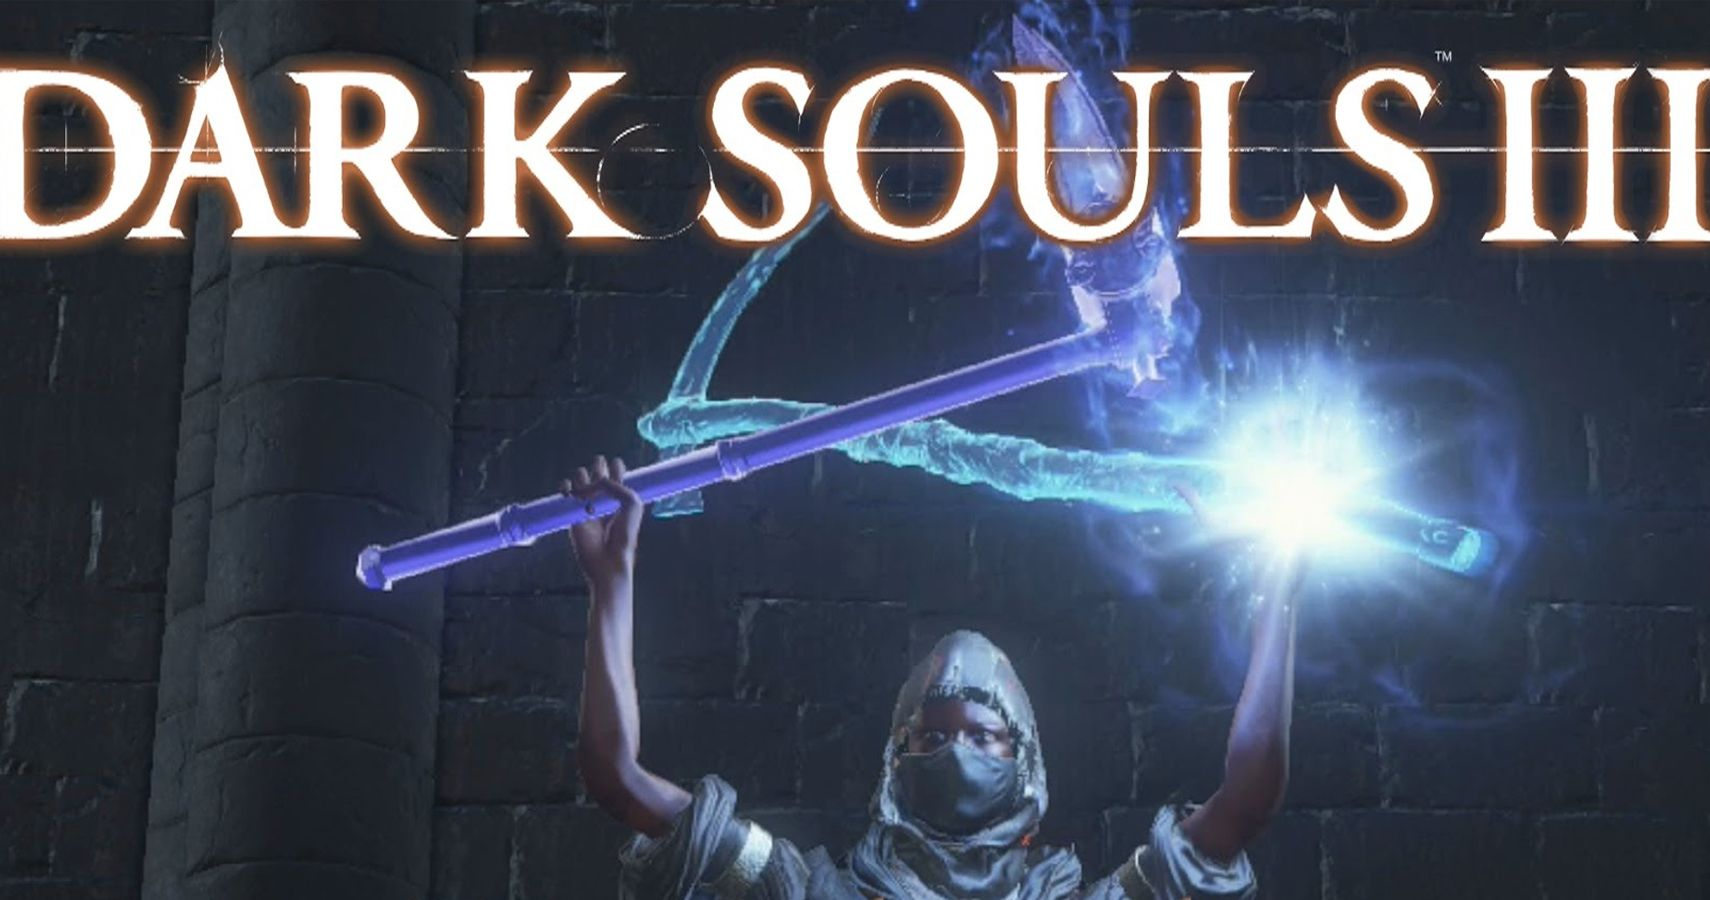 Dark souls 2 early access weapons worth it